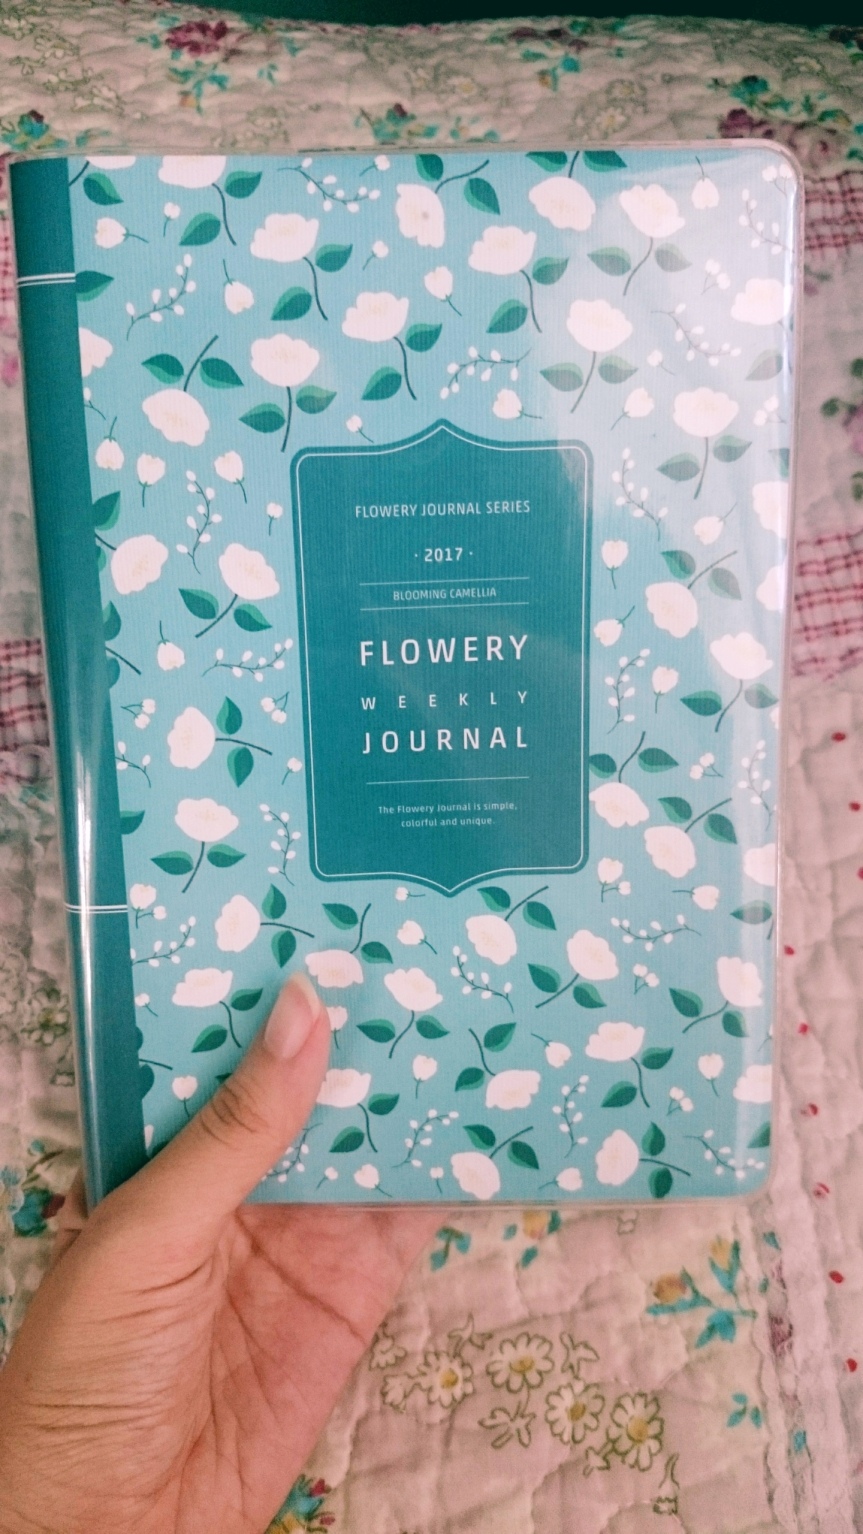 [Stationery Review] ARDIUM 2017 Flowery Weekly Journal – Blooming Camellia